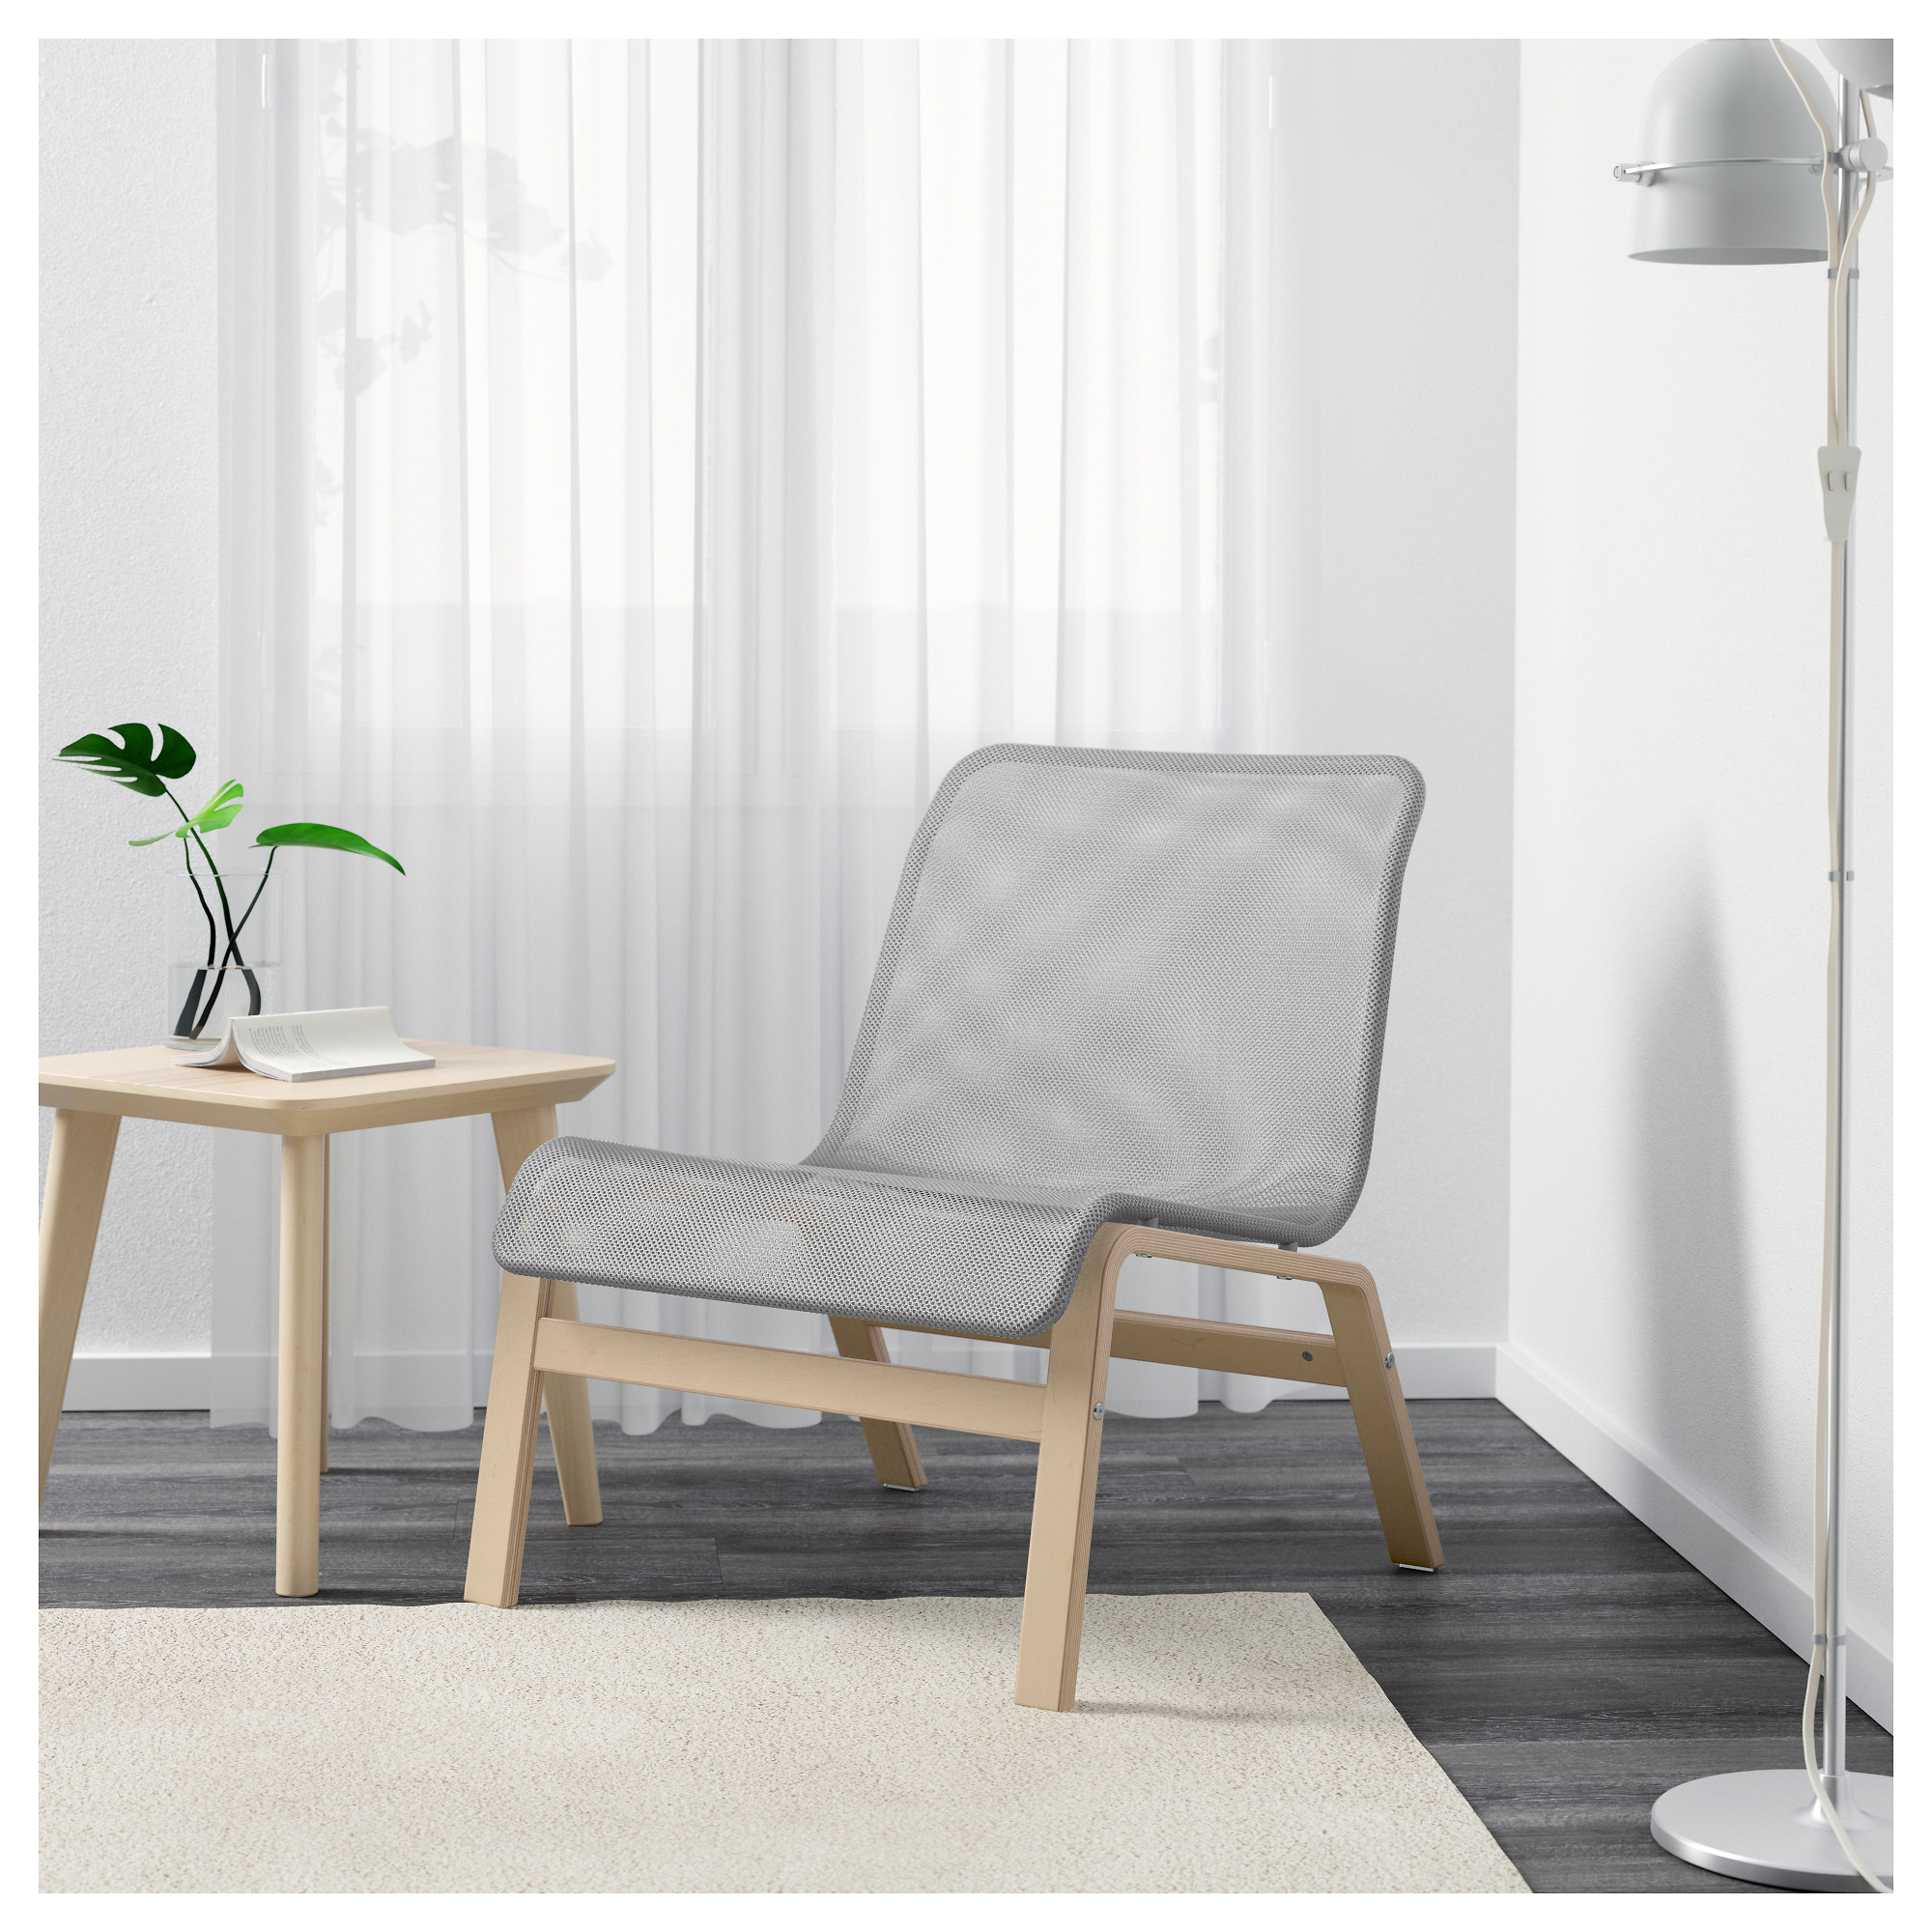 NOLMYRA Chair birch veneer gray IKEA